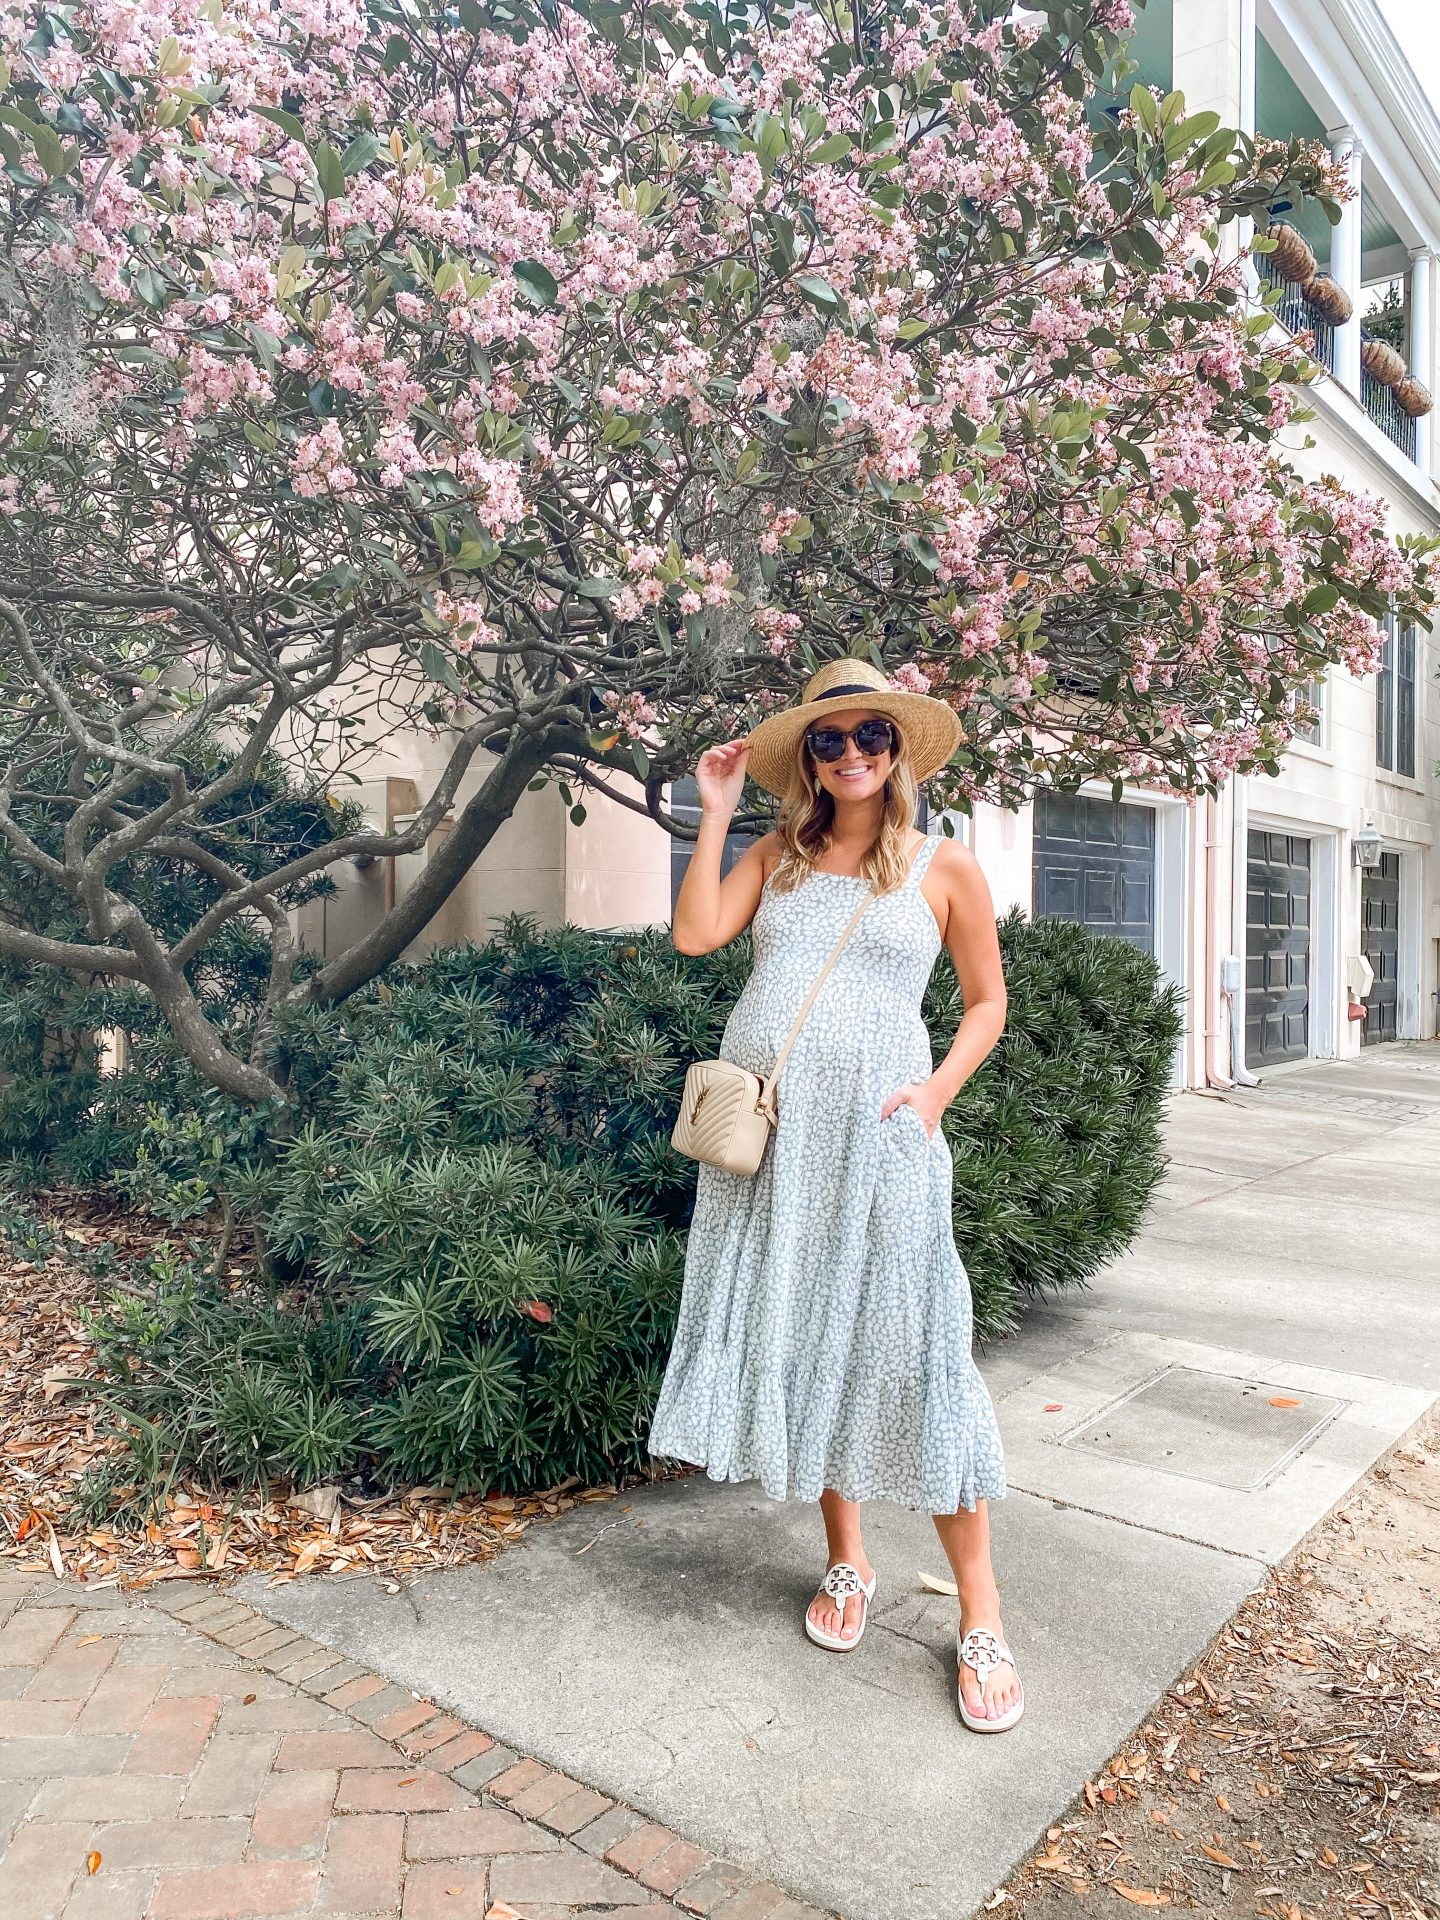 Hacks to Dress for Hot Weather,, wear a sunhat